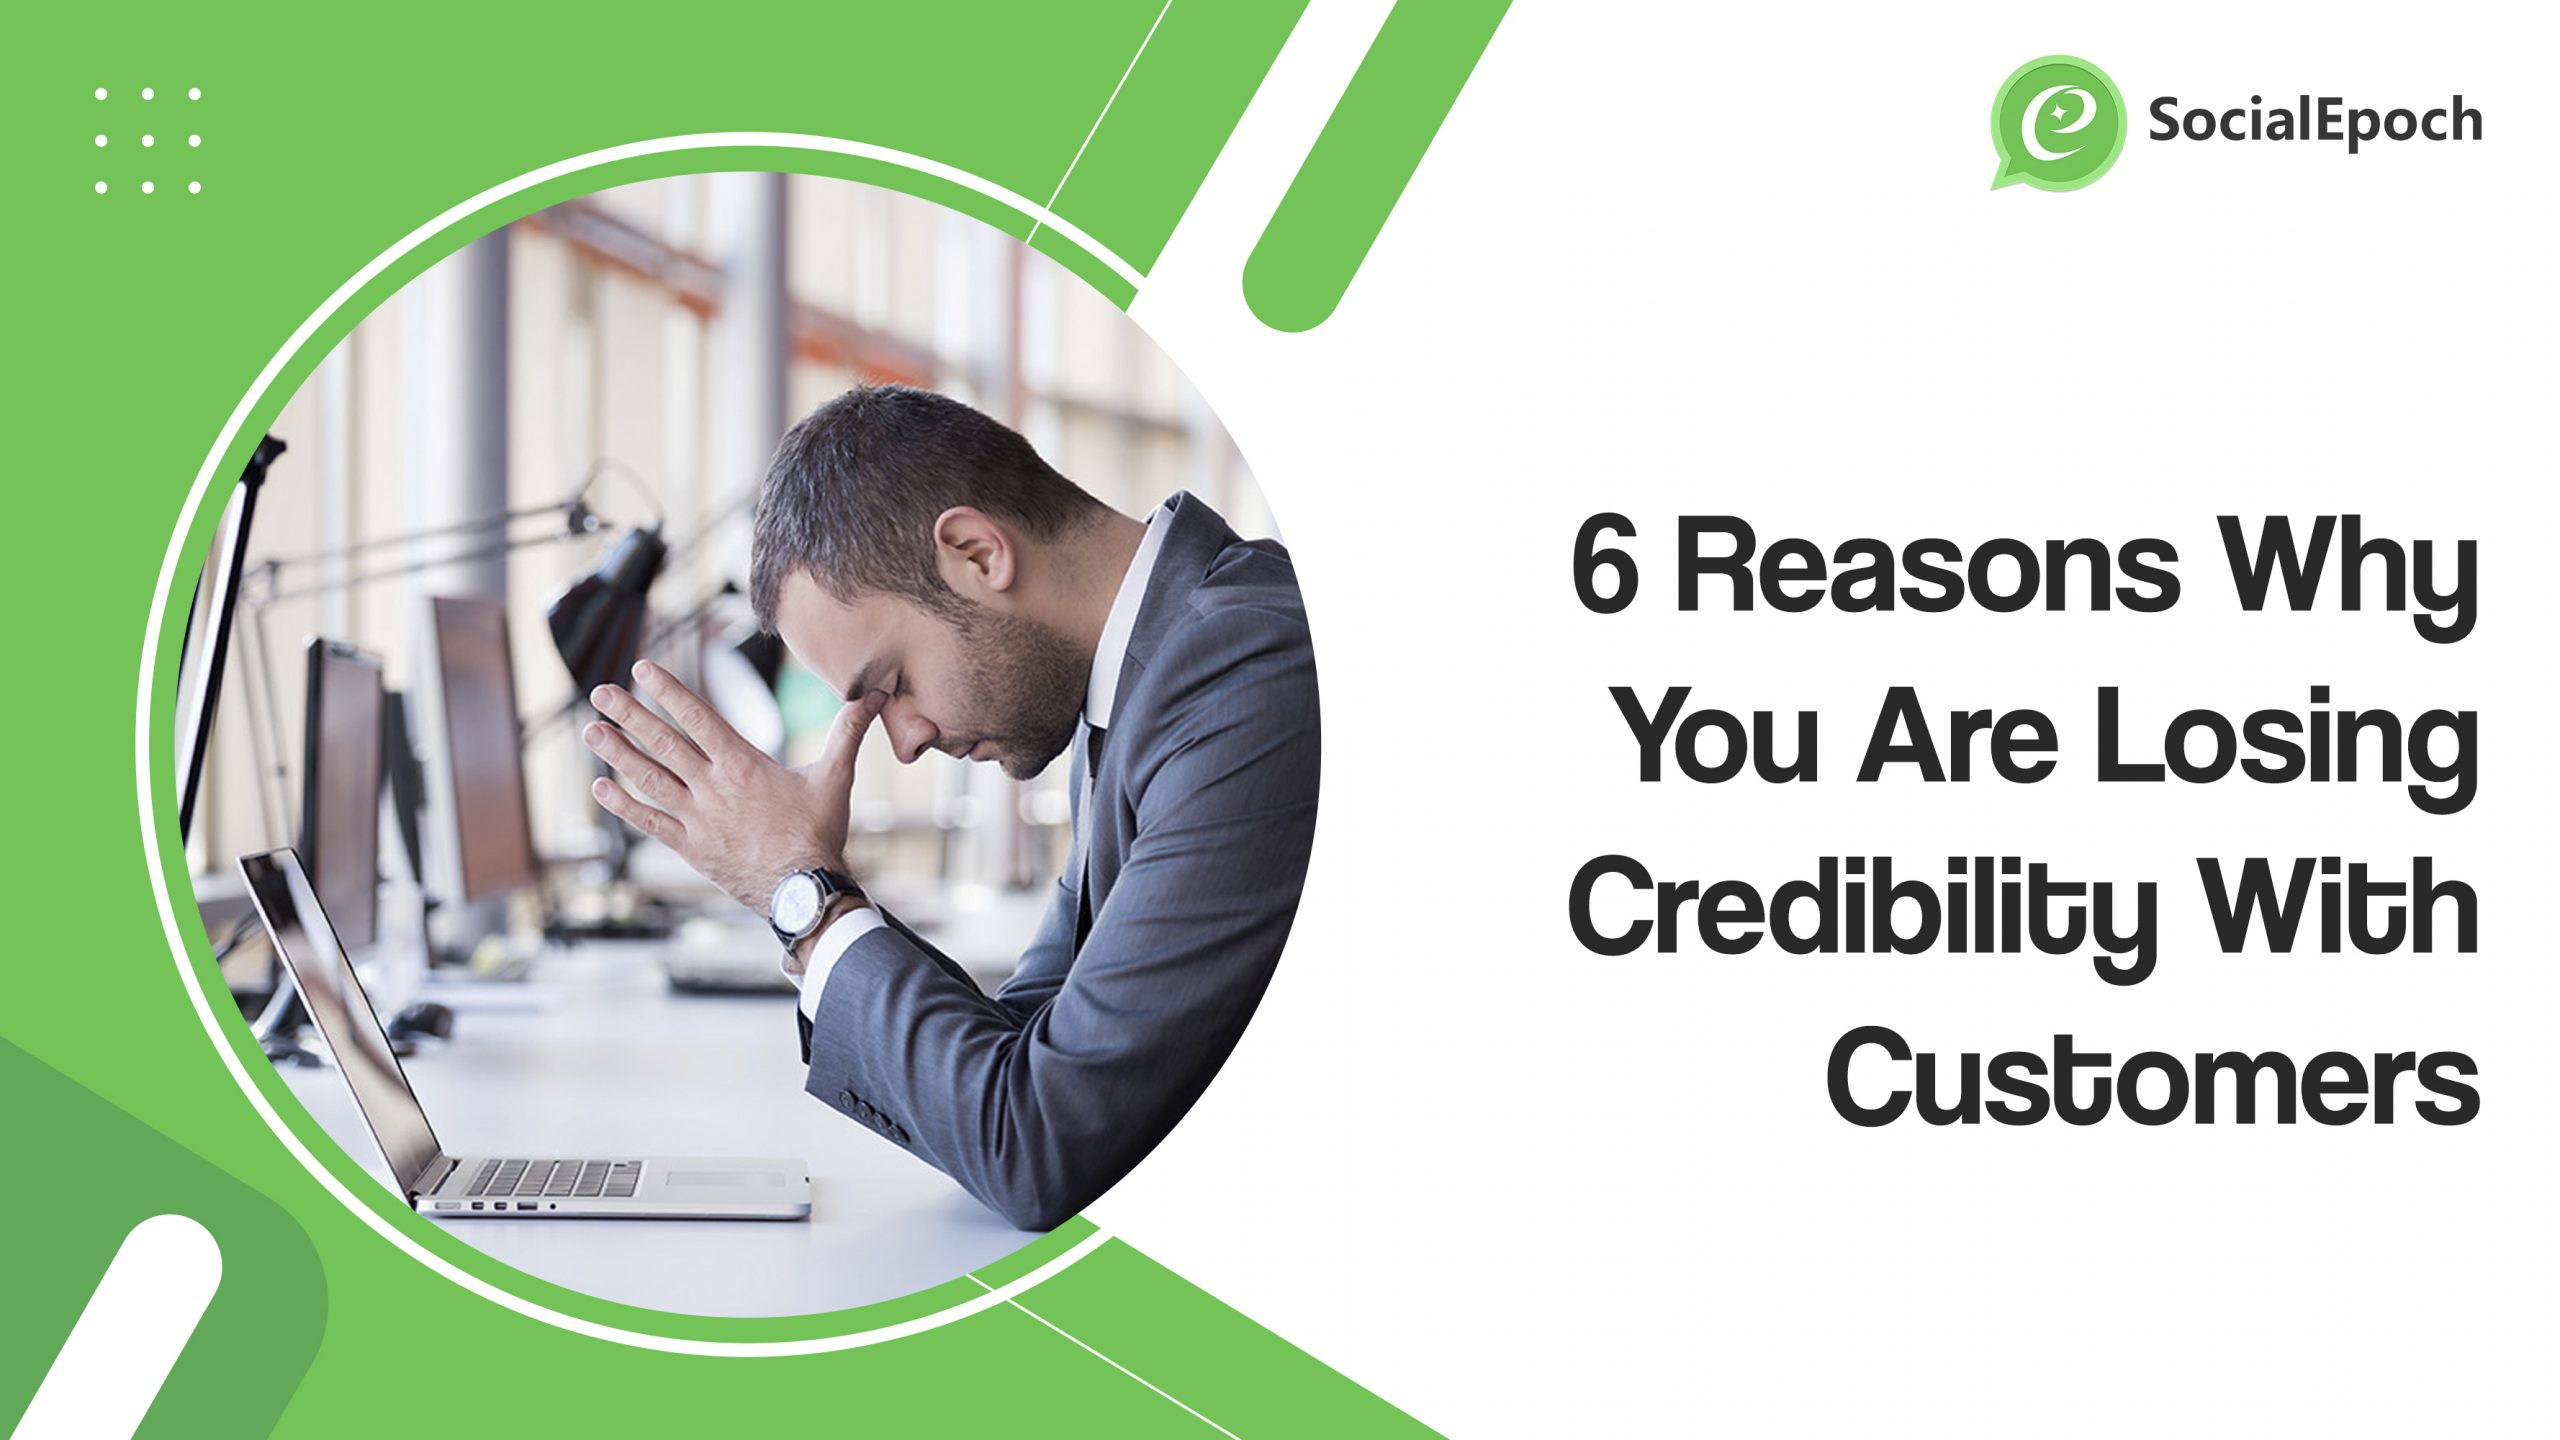 6 Reasons Why You Are Losing Credibility With Customers